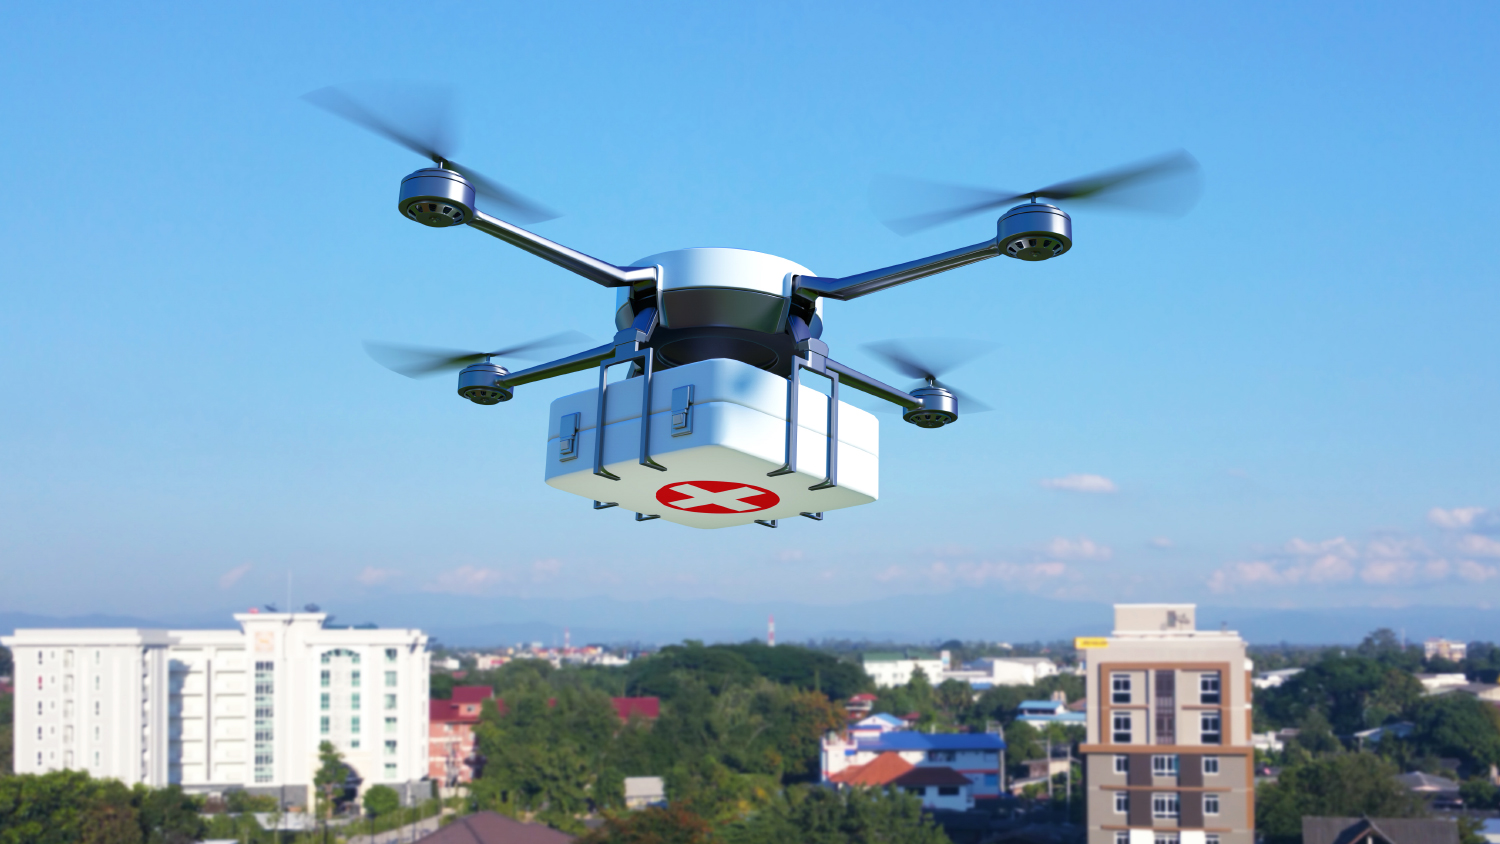 A flying drone delivers medical supplies.